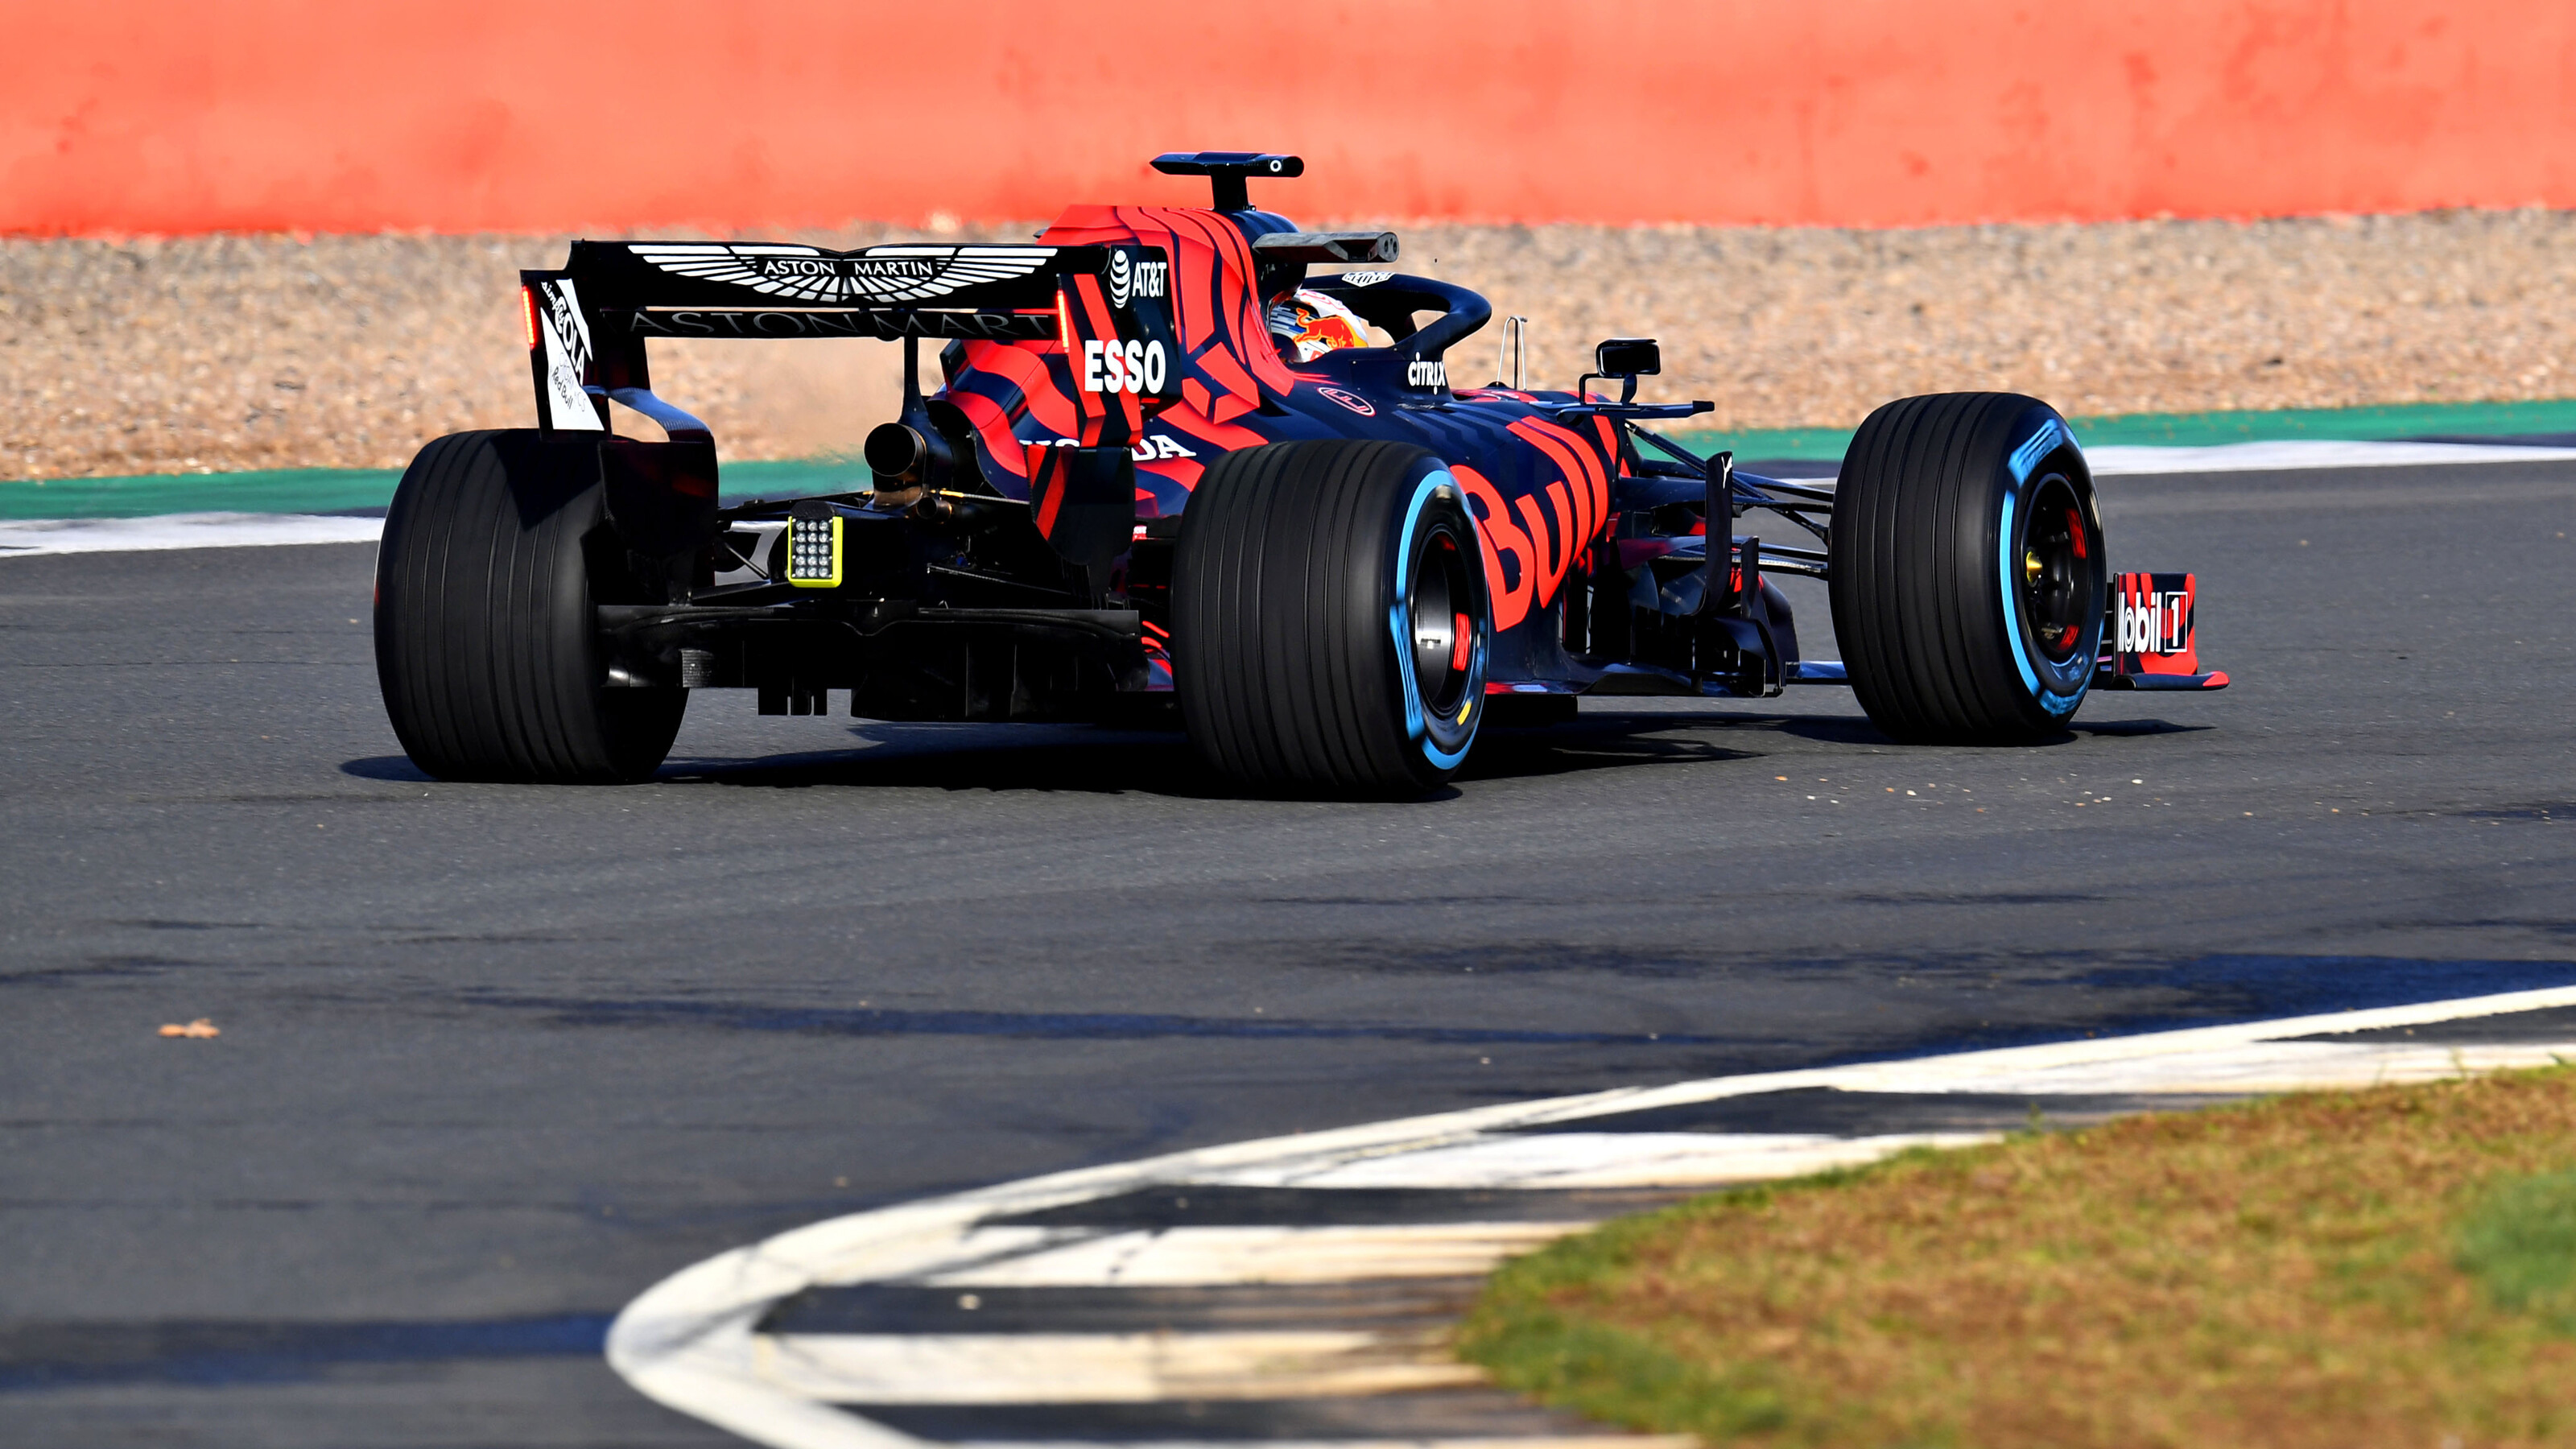 F1: Check Out Our Gallery Of Red Bull